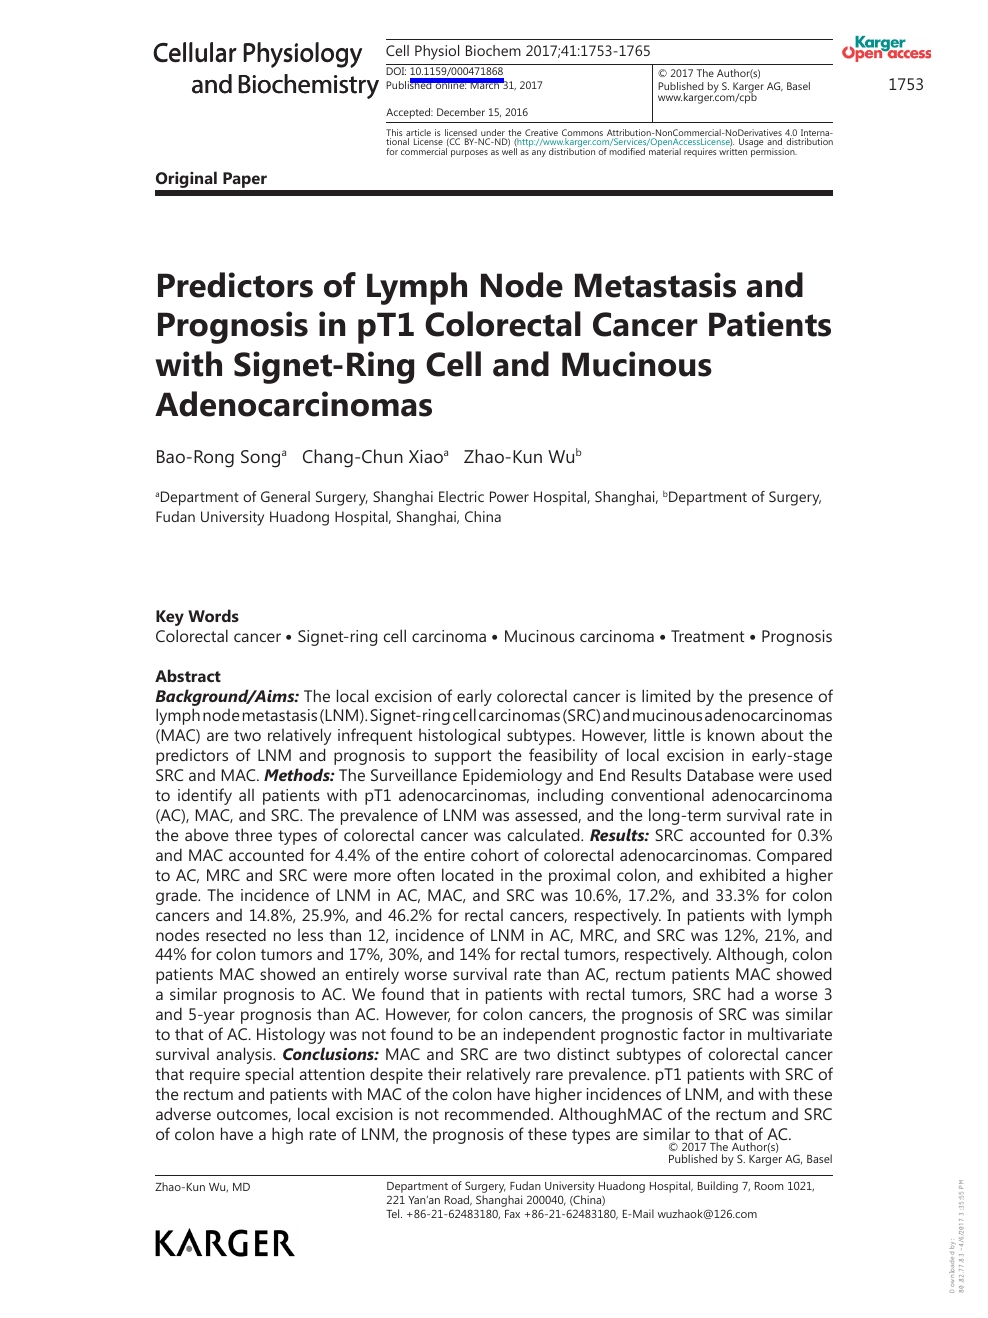 Predictors Of Lymph Node Metastasis And Prognosis In Pt1 Colorectal Cancer Patients With Signet Ring Cell And Mucinous Adenocarcinomas Topic Of Research Paper In Clinical Medicine Download Scholarly Article Pdf And Read